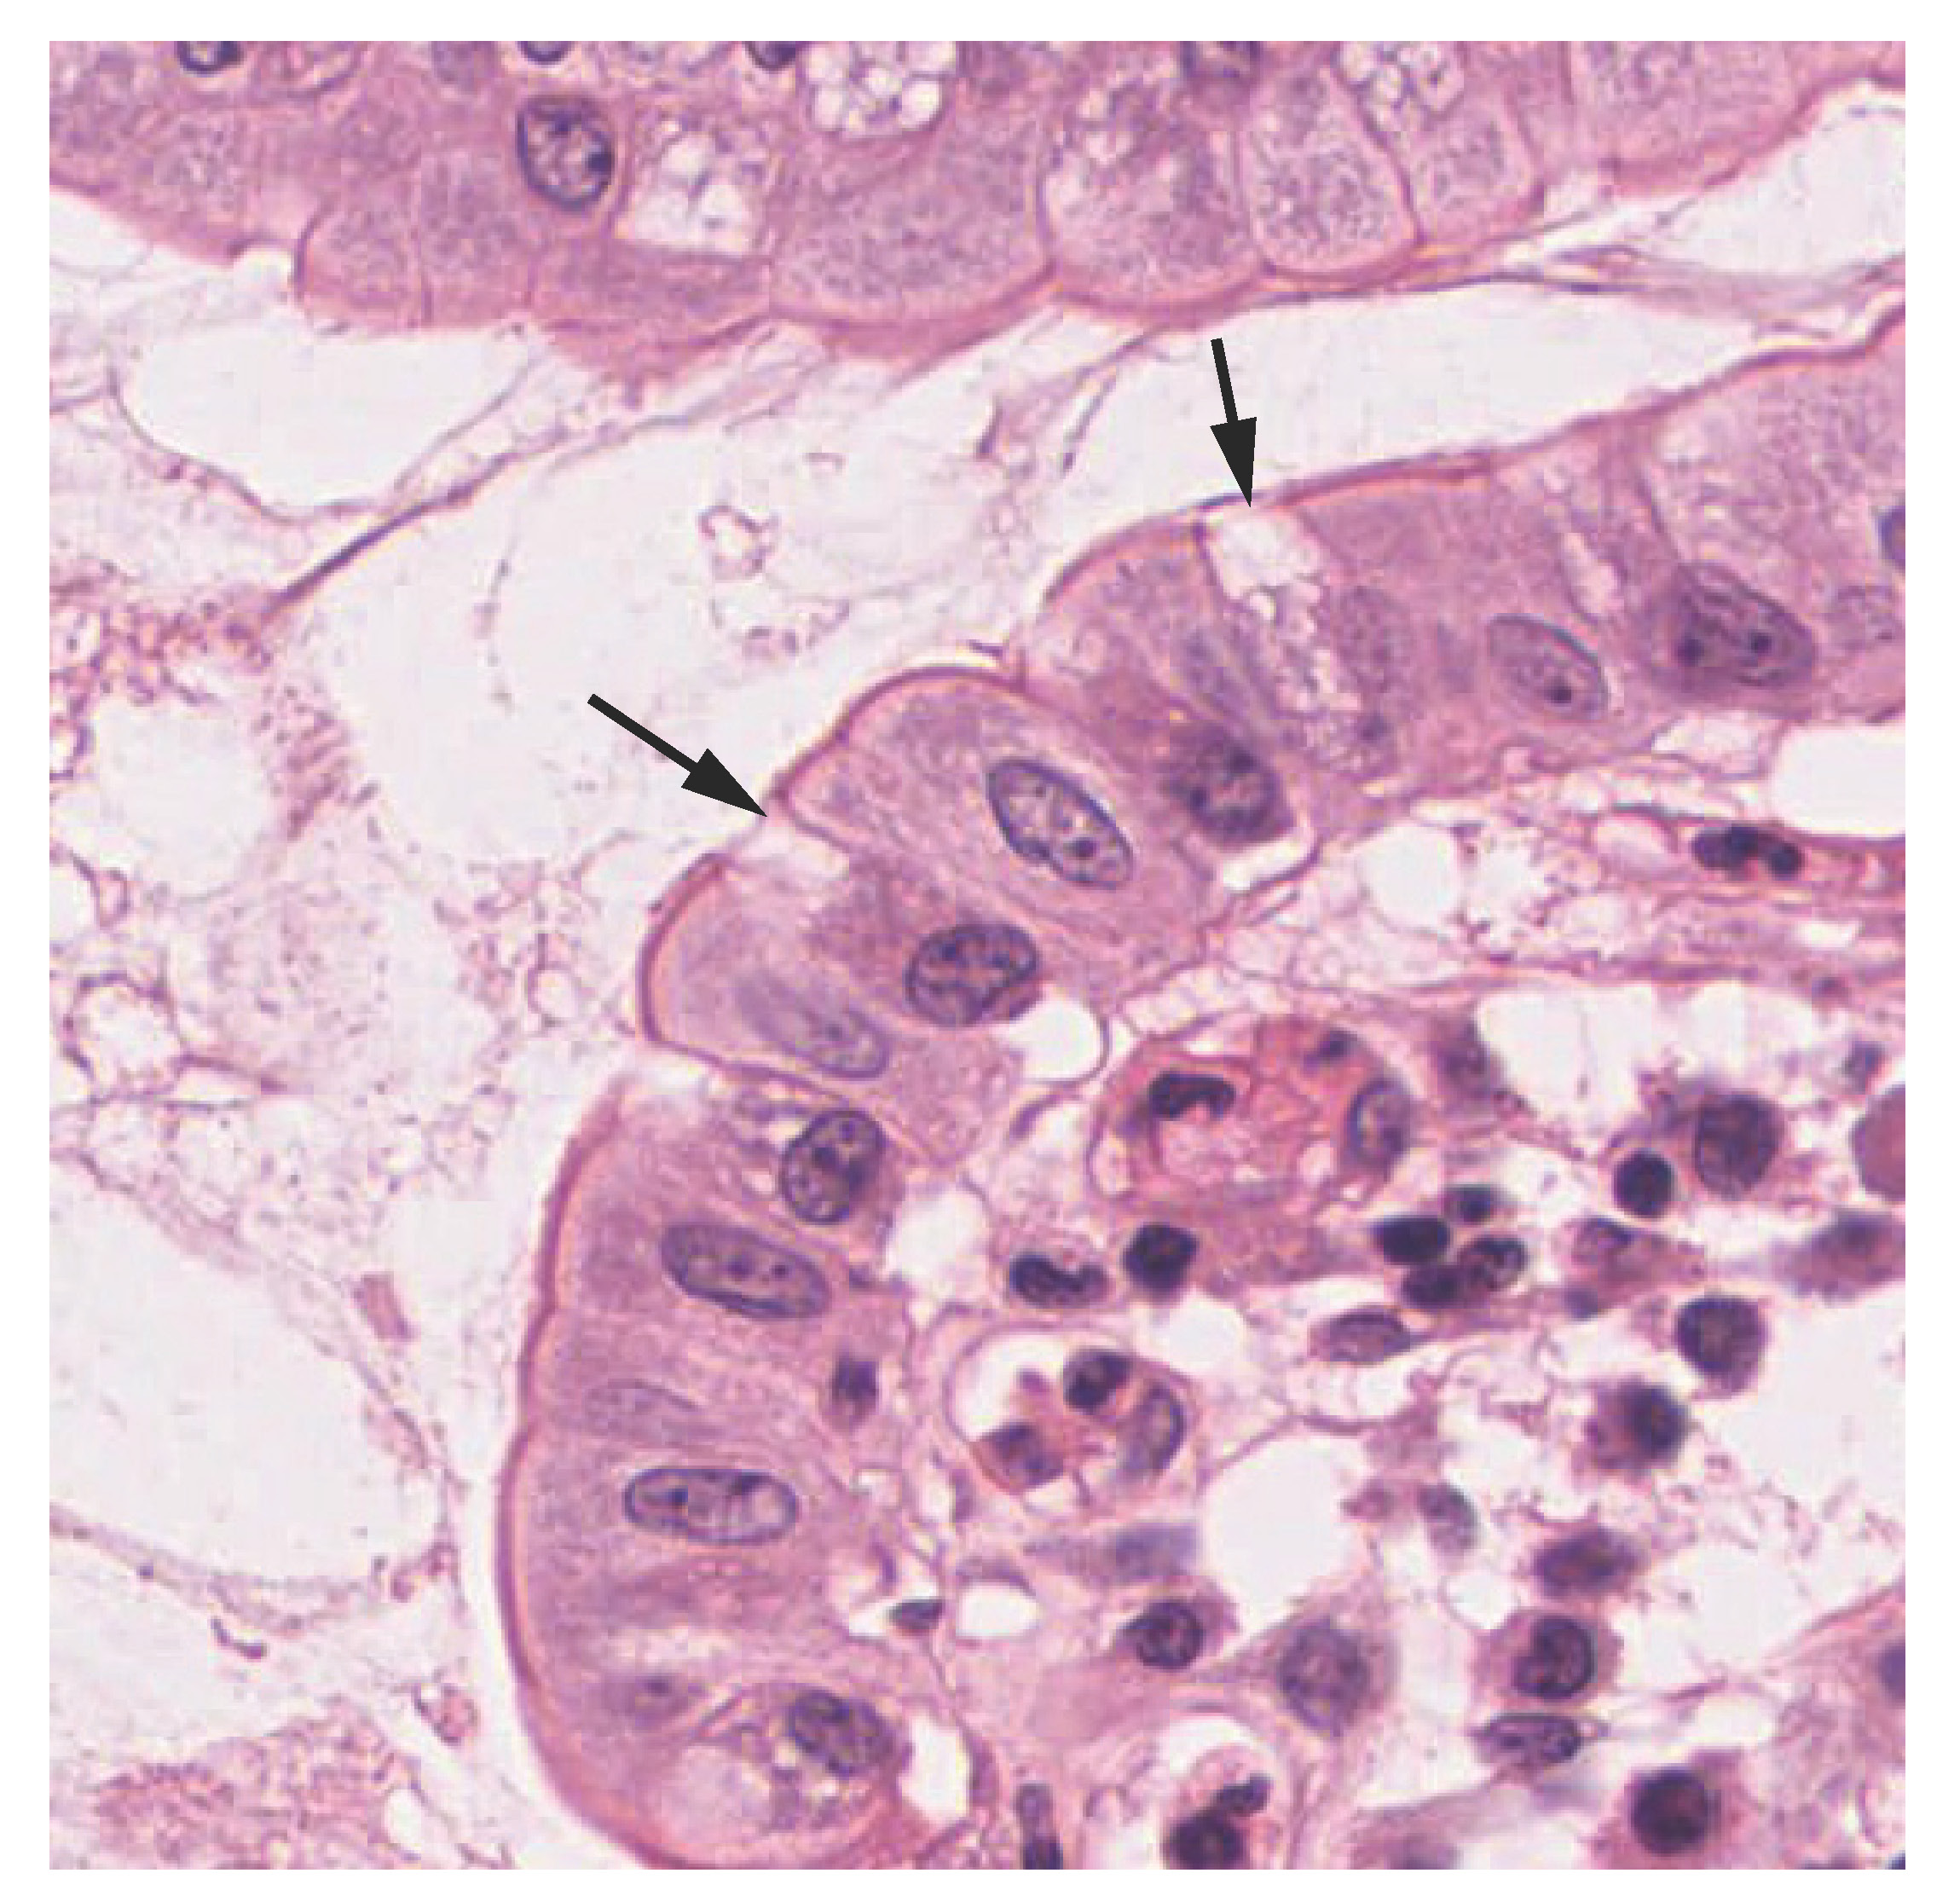 The second image is a micrograph of the innermost lining of the small intestine. This innermost lining is a simple columnar epithelium, with a single layer of rectangular cells oriented in a line. Occasionally, the line of epithelial cells is interrupted by a goblet cell. Goblet cells are thinner than the epithelial cells and appear roughly pill shaped. In this micrograph, the cells did not stain as darkly as the epithelial cells.